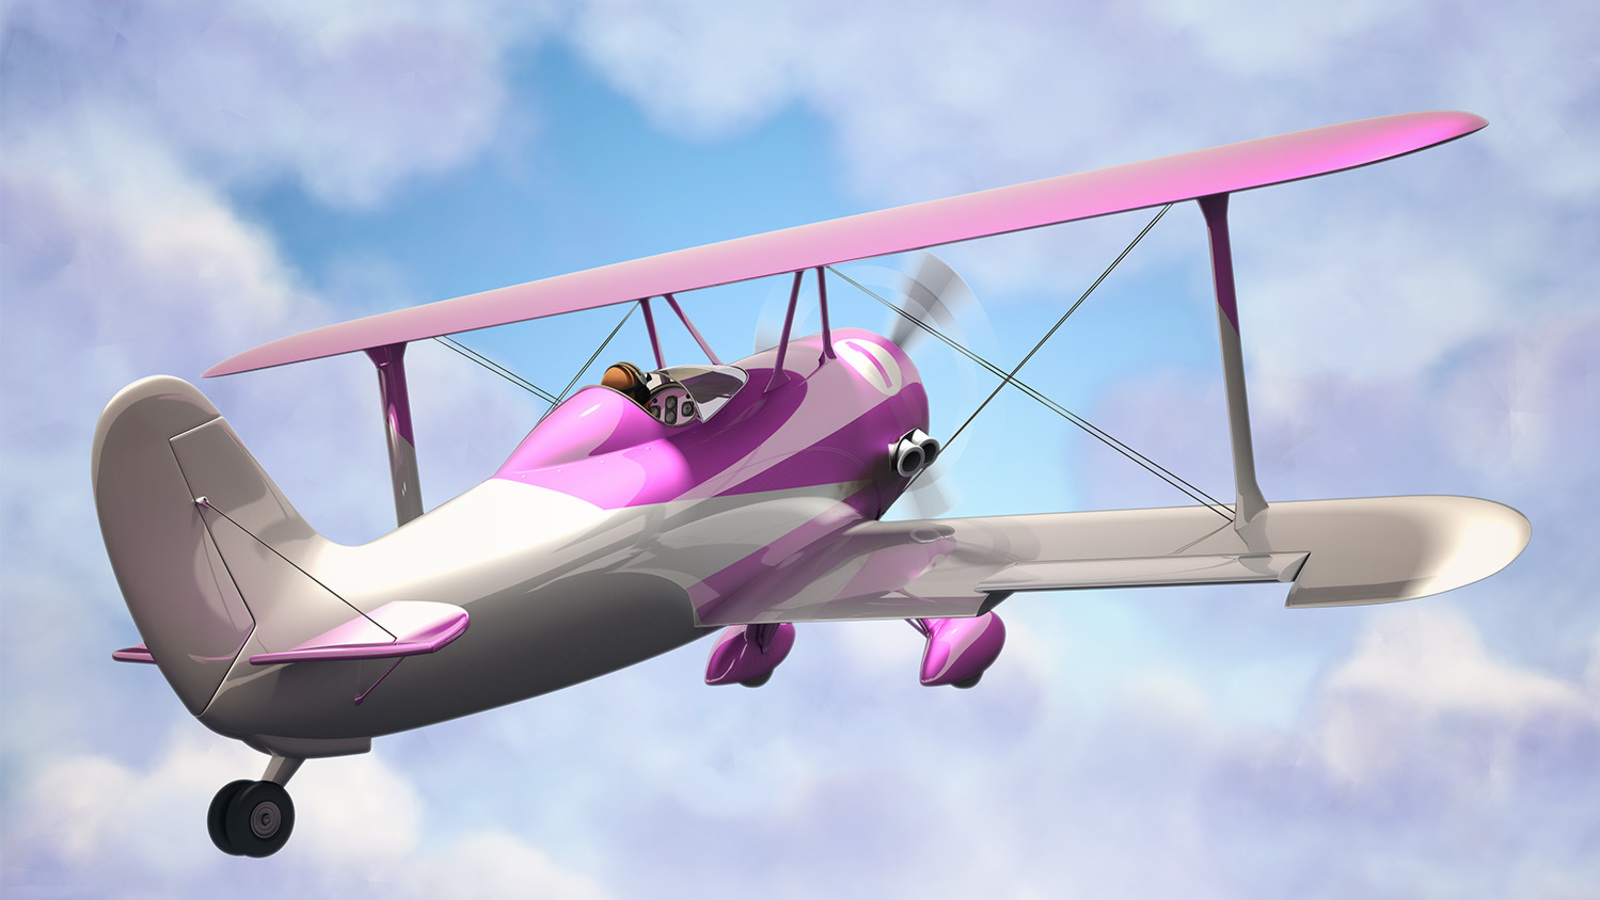 render of concentric aeroplane